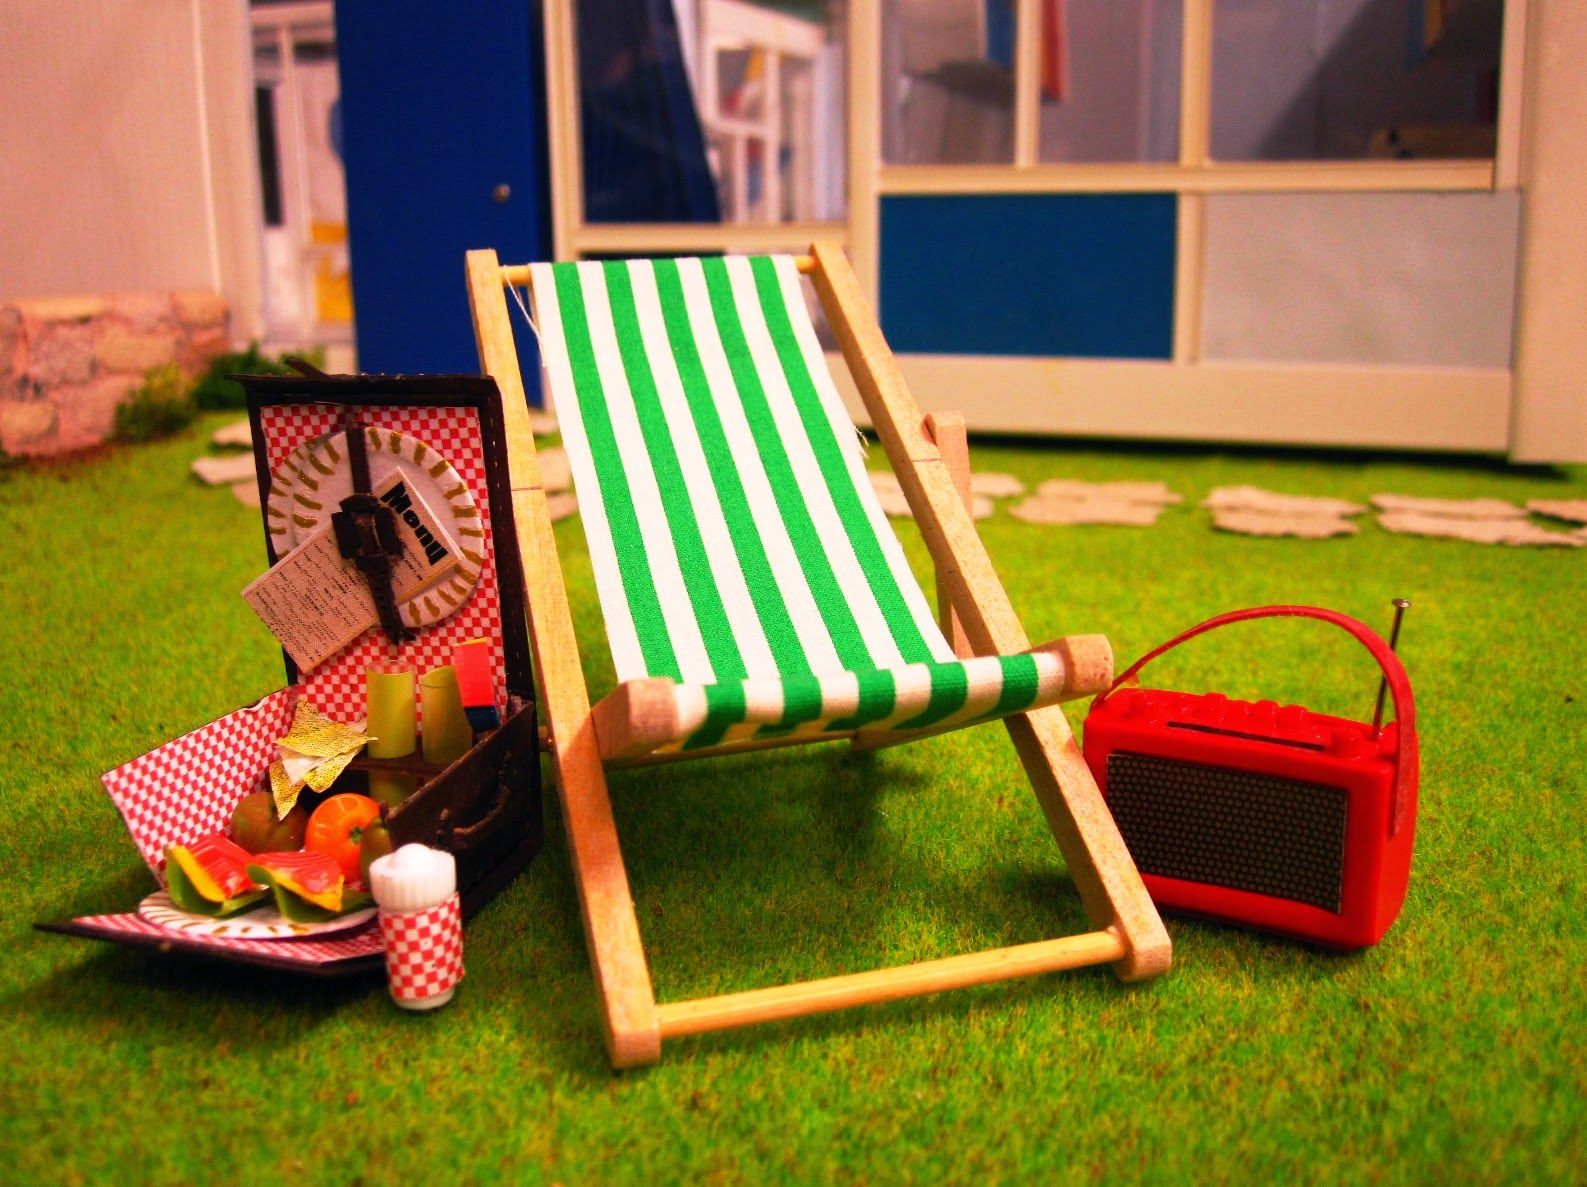 Miniature deck chair, radio and filled picnic hamper on the lawns in front of a miniature Rose Seidler house.